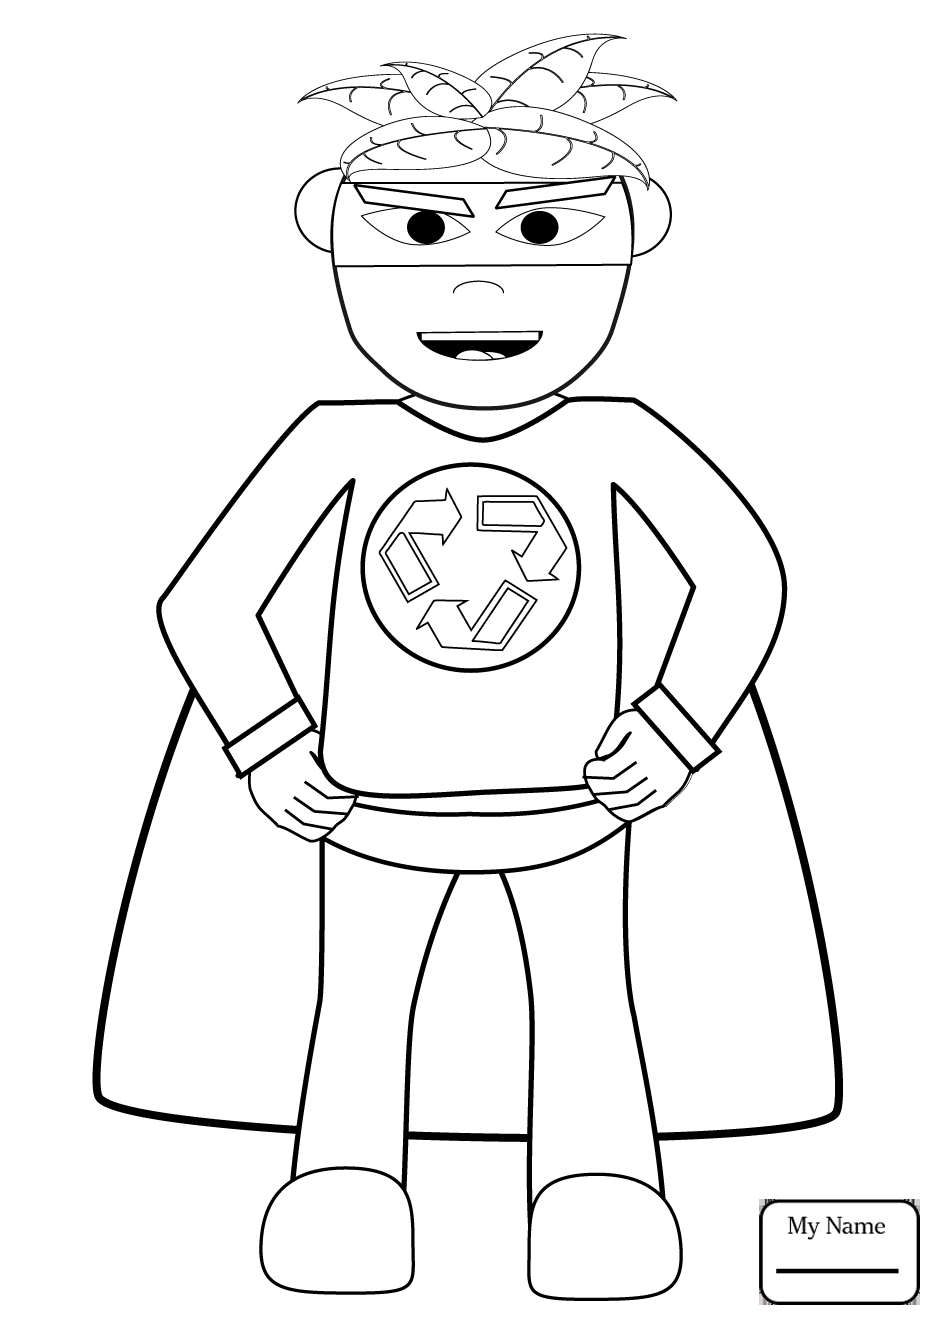 937x1326 Recycle Symbol Nature Seasons Recycling Coloring Pages